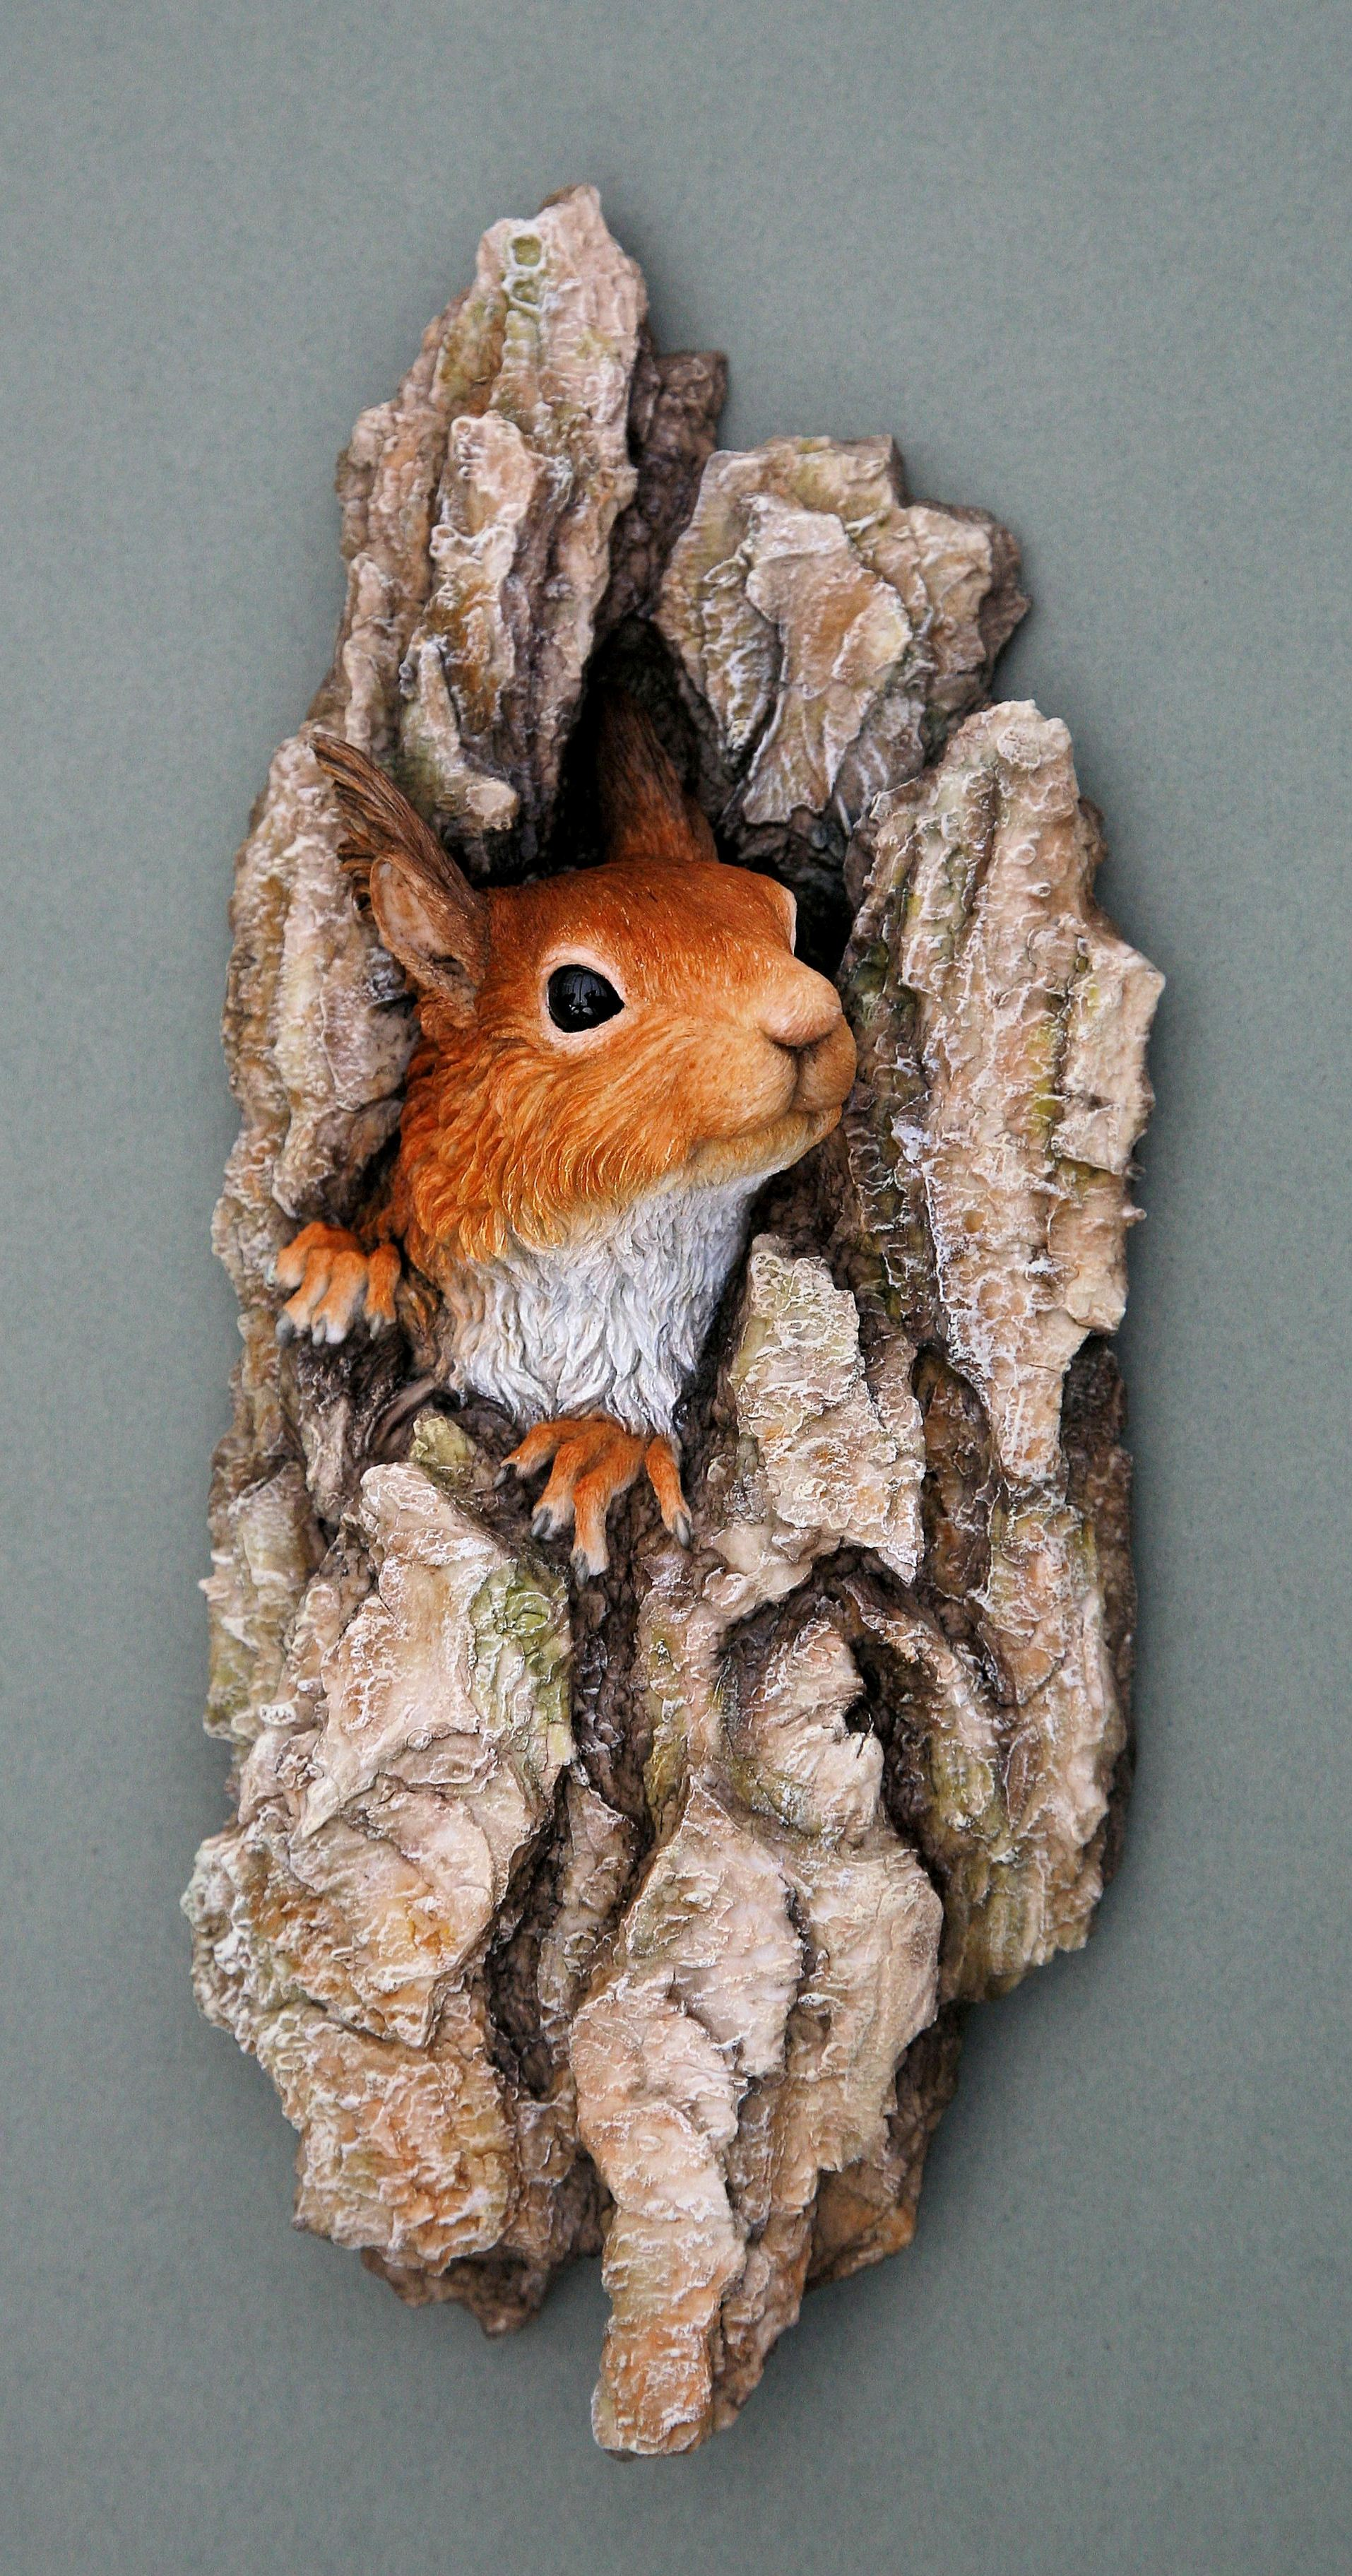 Red squirrel wall plaque in sculpted relief by sculptor Kirsty Armstrong